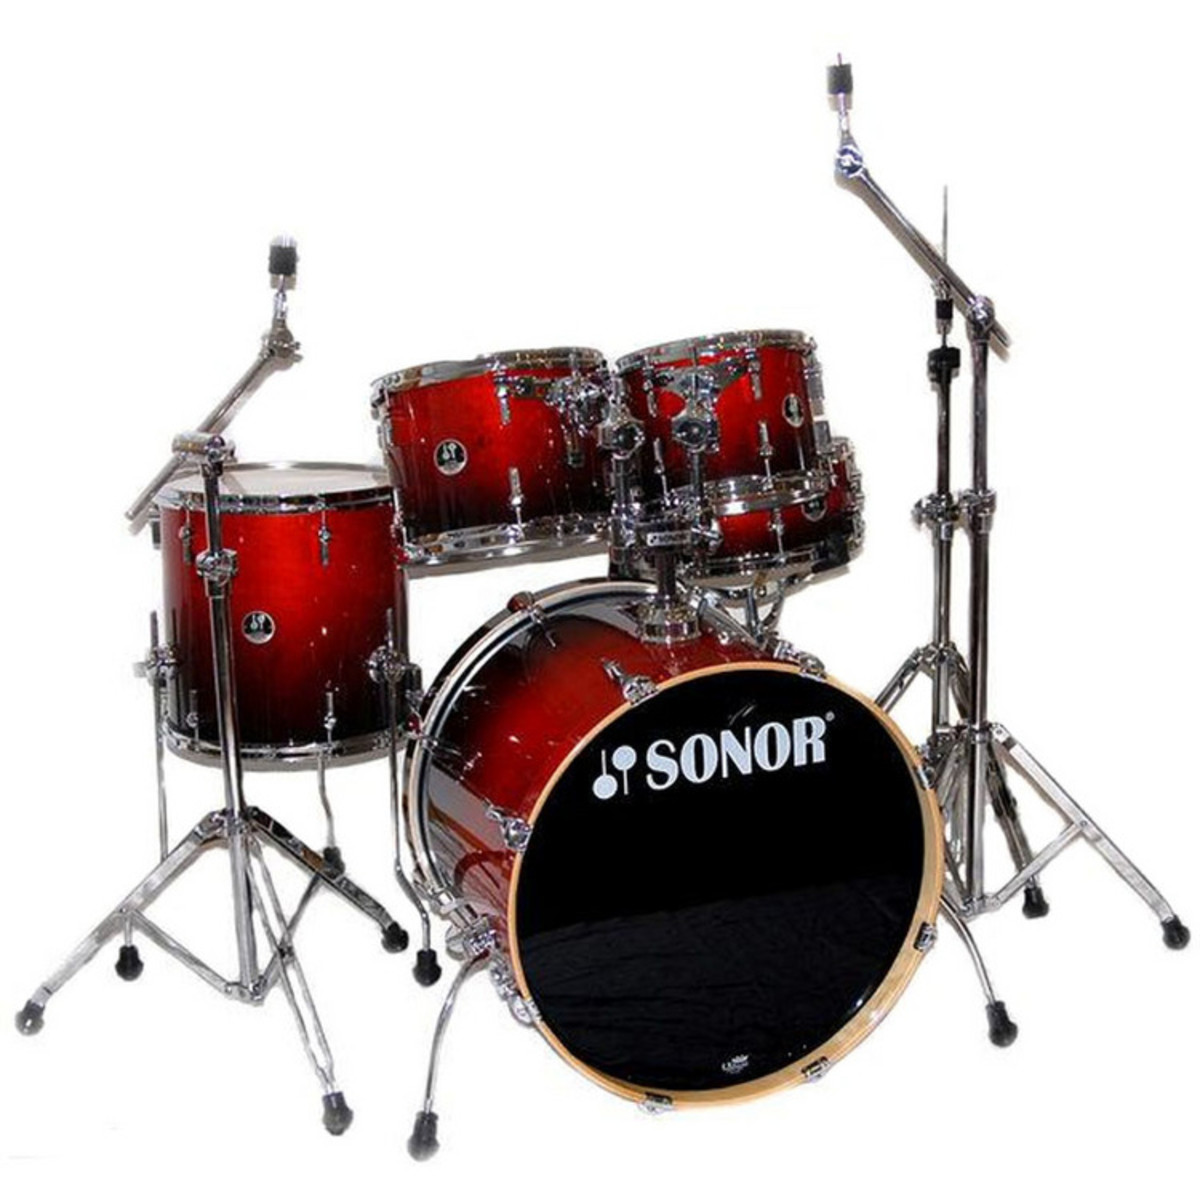 82164f5380de Sonor F2007 Stage 2 Drum Kit Amber Fade at Gear4music